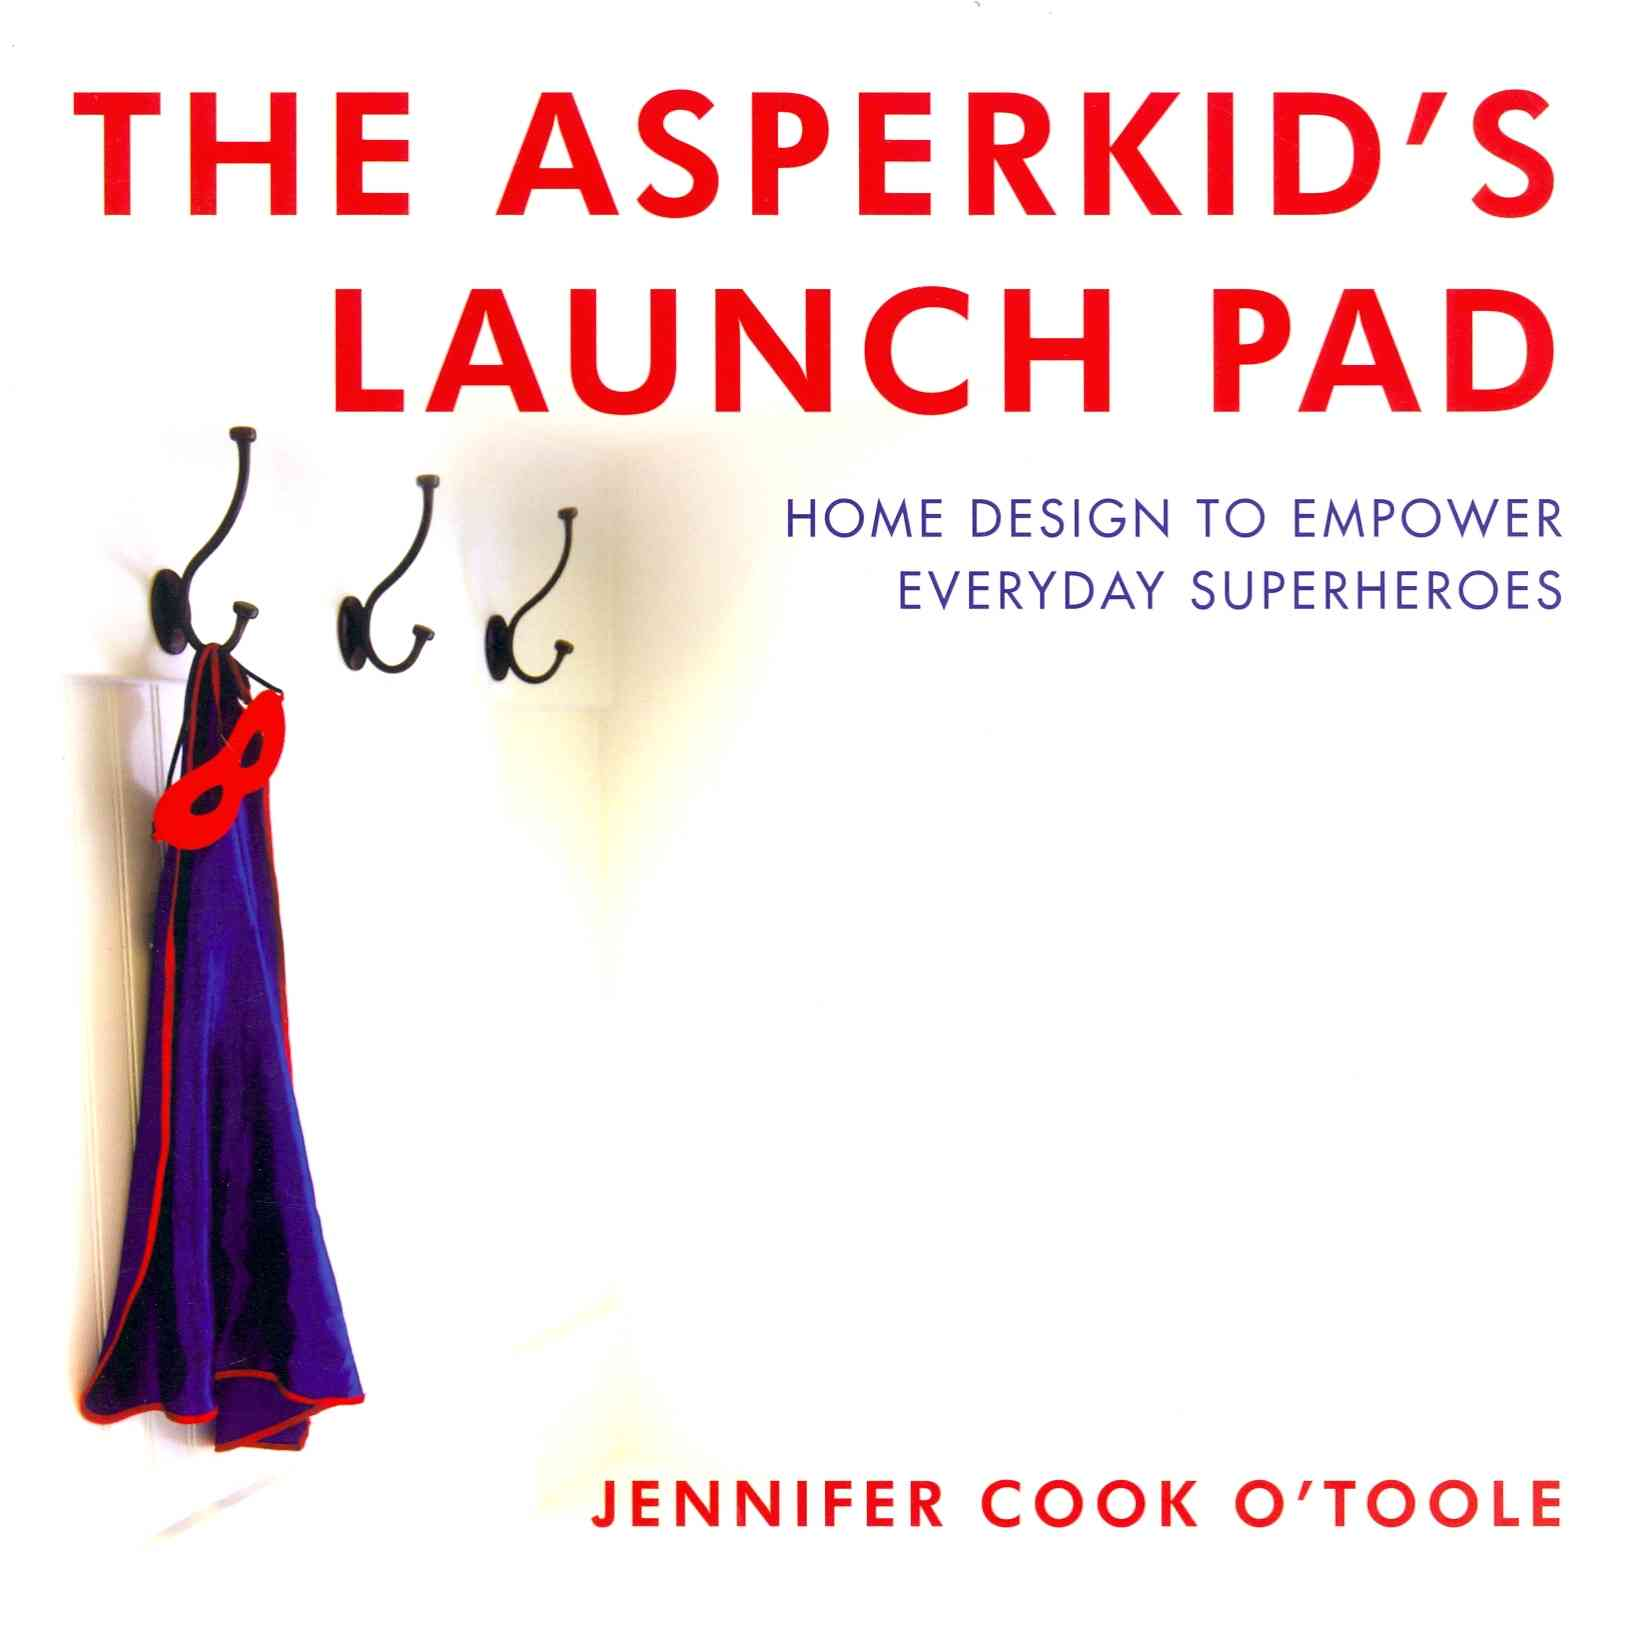 The Asperkid's Launch Pad By O'toole, Jennifer Cook